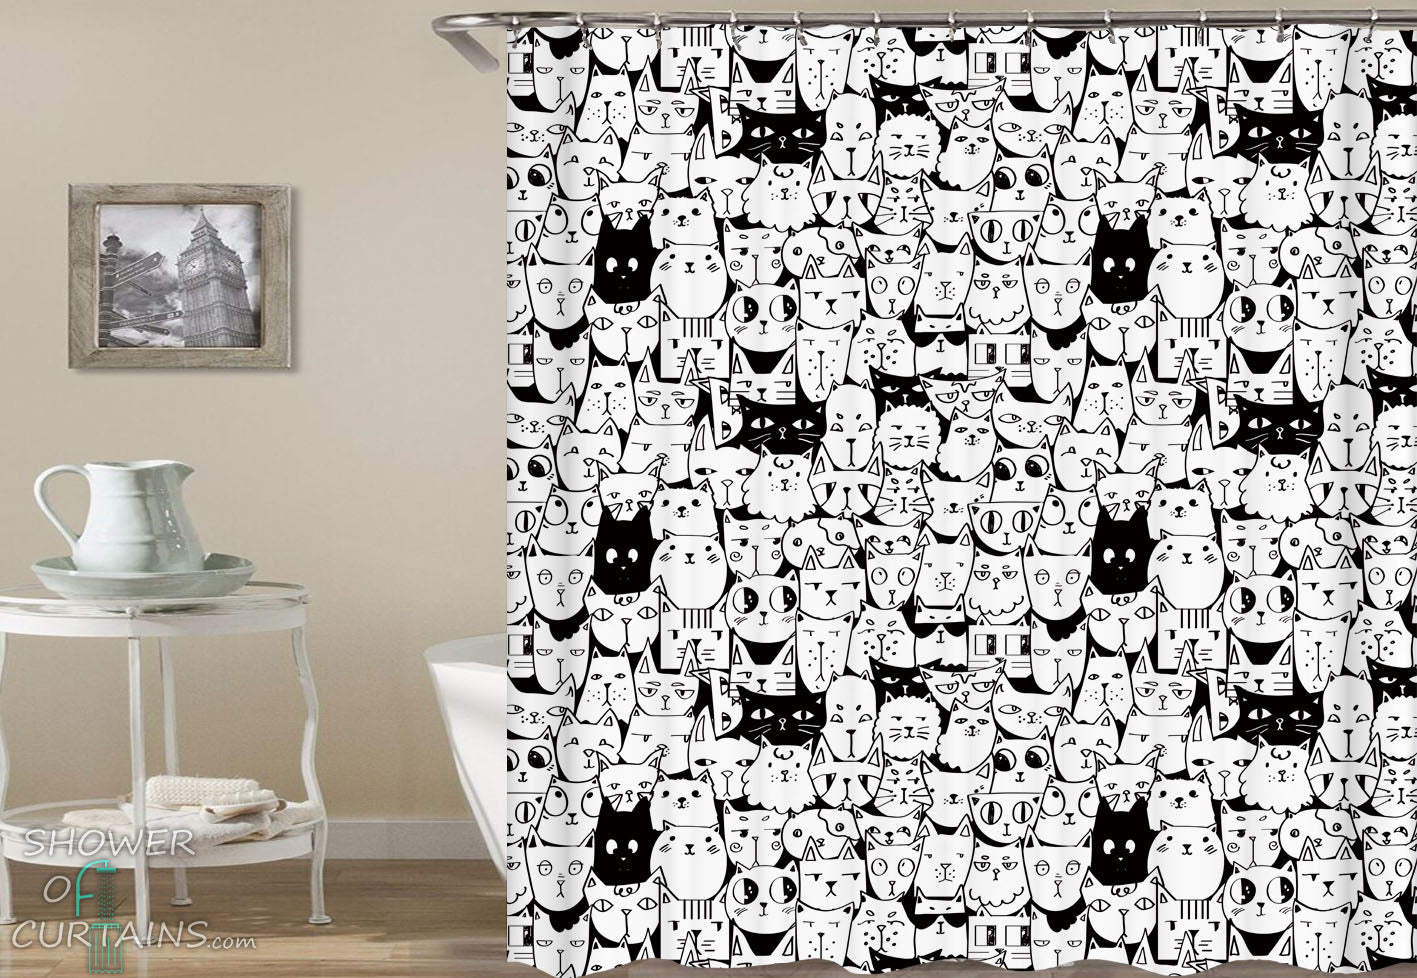 Black And White Shower Curtain Abstract Lines Print For Bathroom Shower Curtains Home Garden